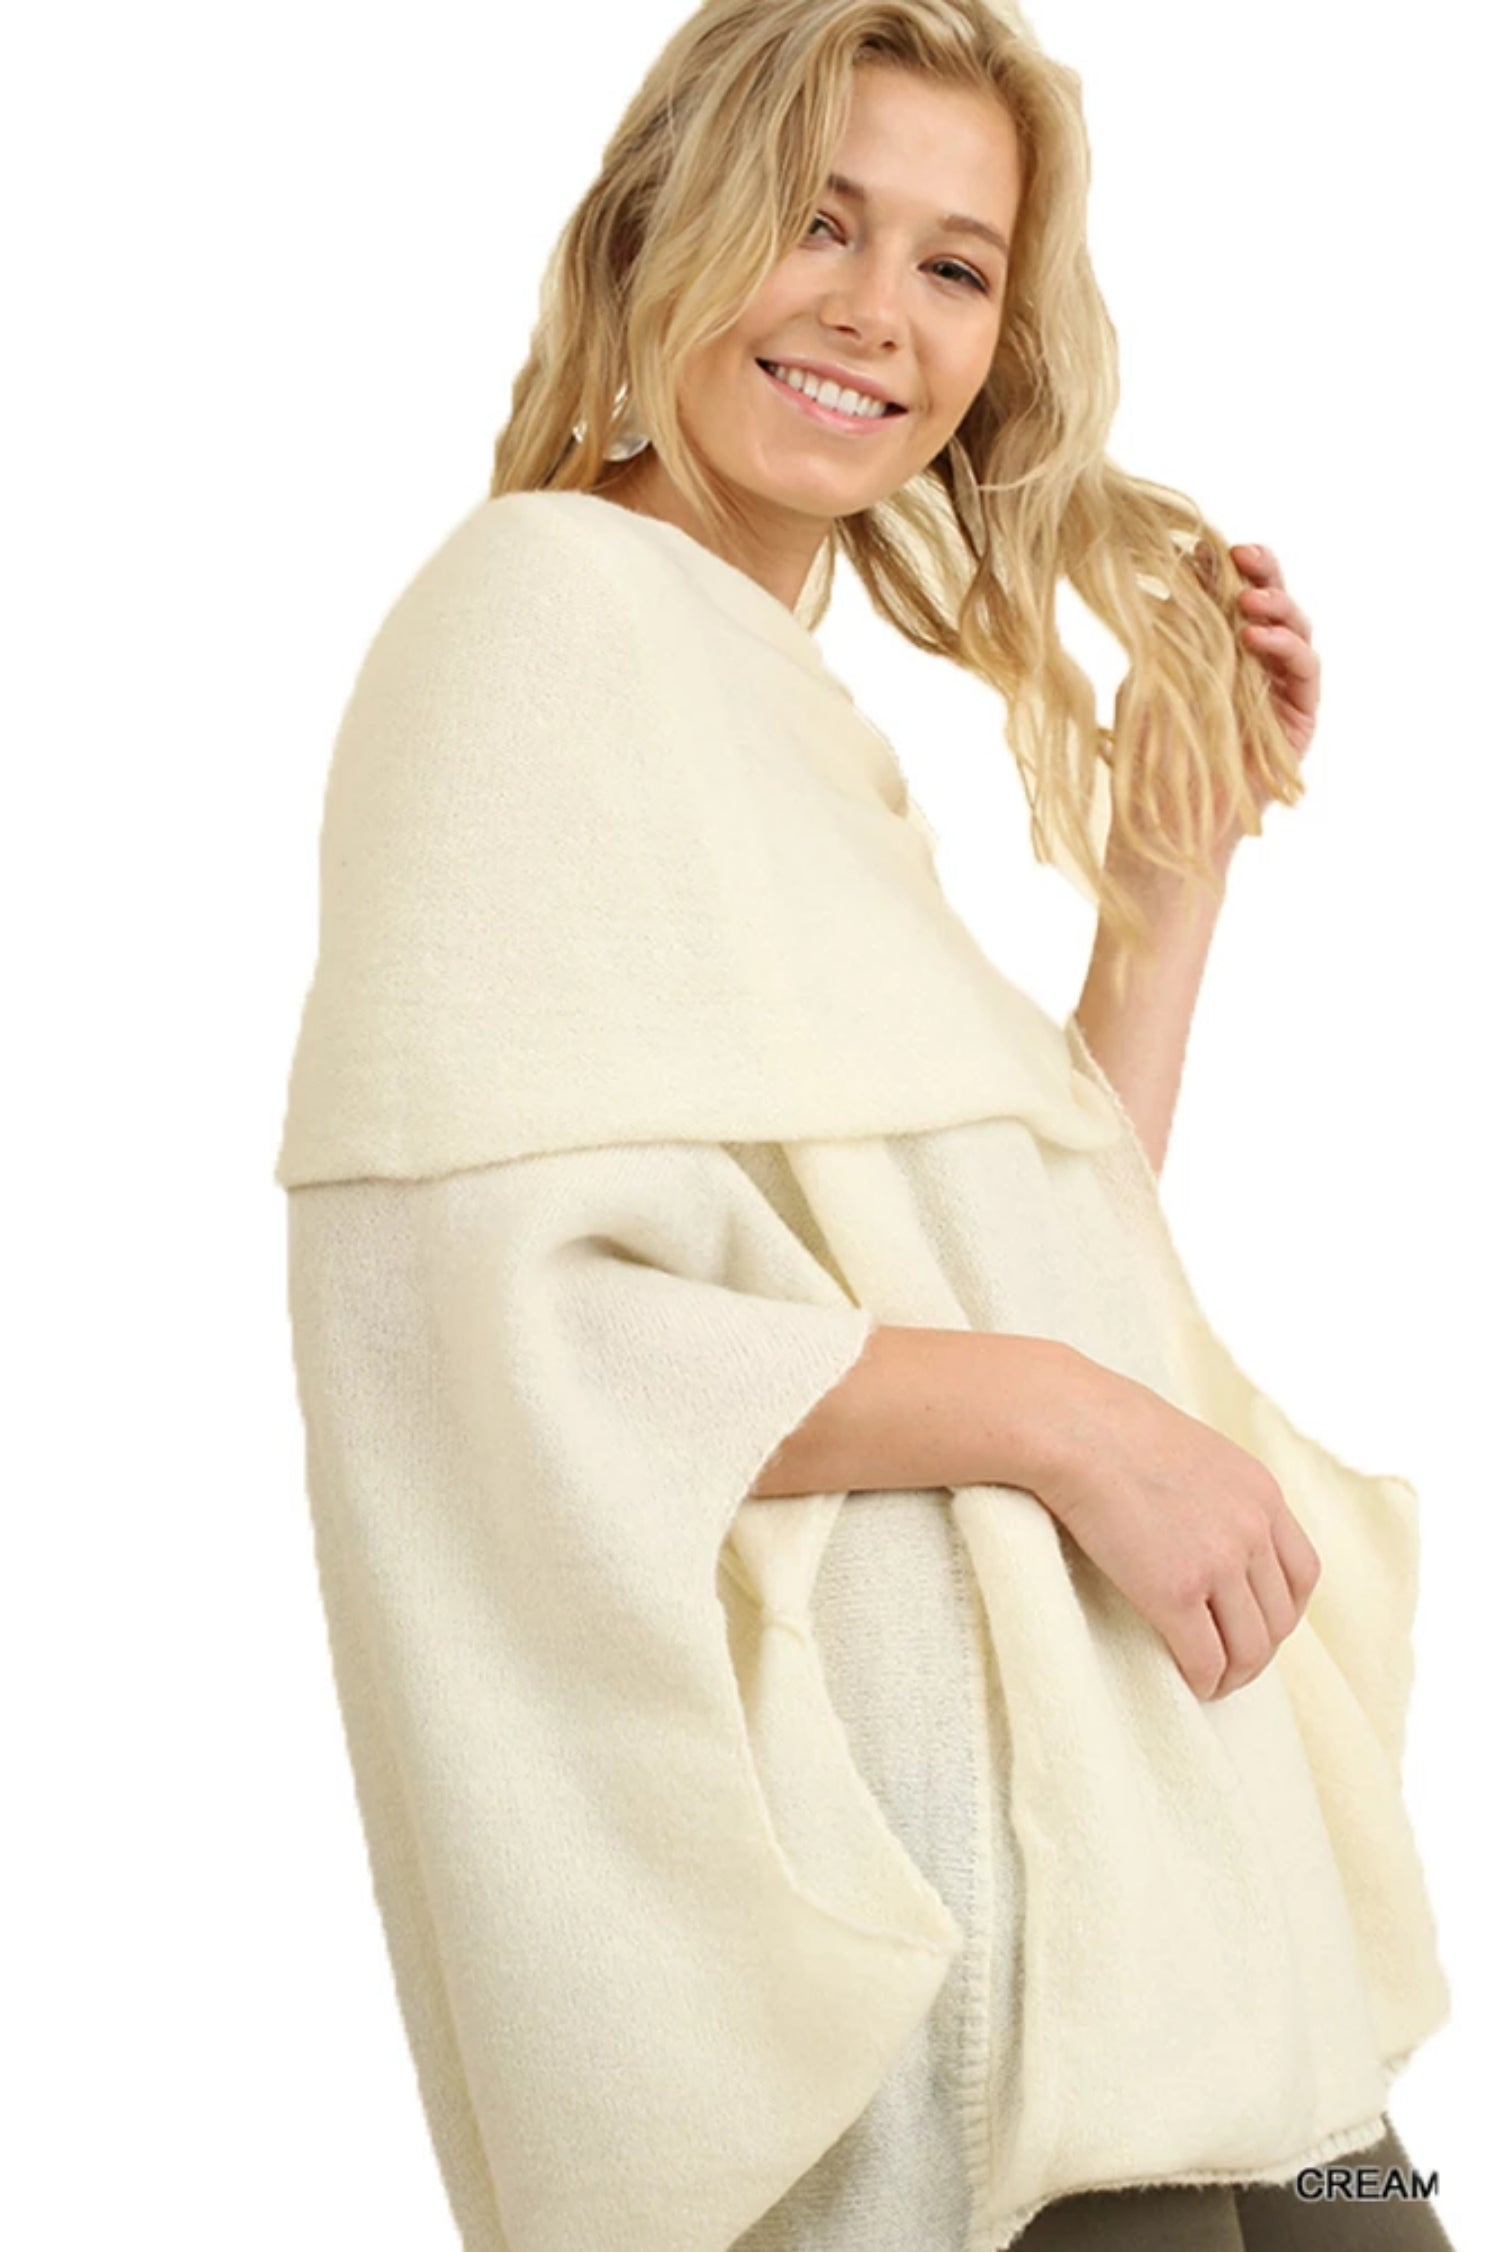 Women's Cream Cowl Neck Kaftan Cozy Pull Over Sweater